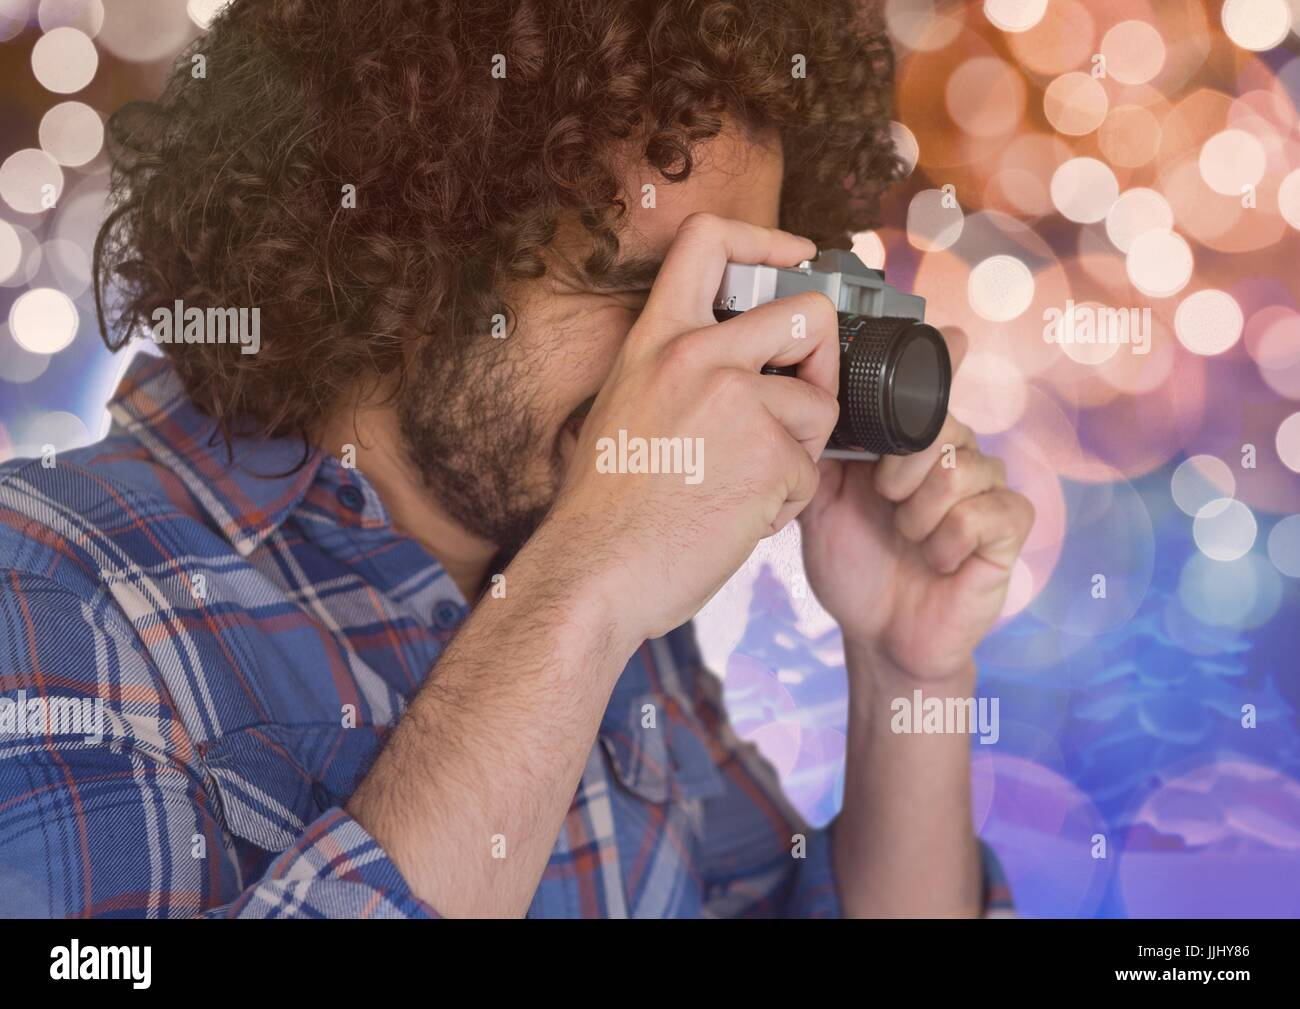 photographer foreground taking a photo with vintage camera. Blurred  blue and orange lights backgrou - Stock Image